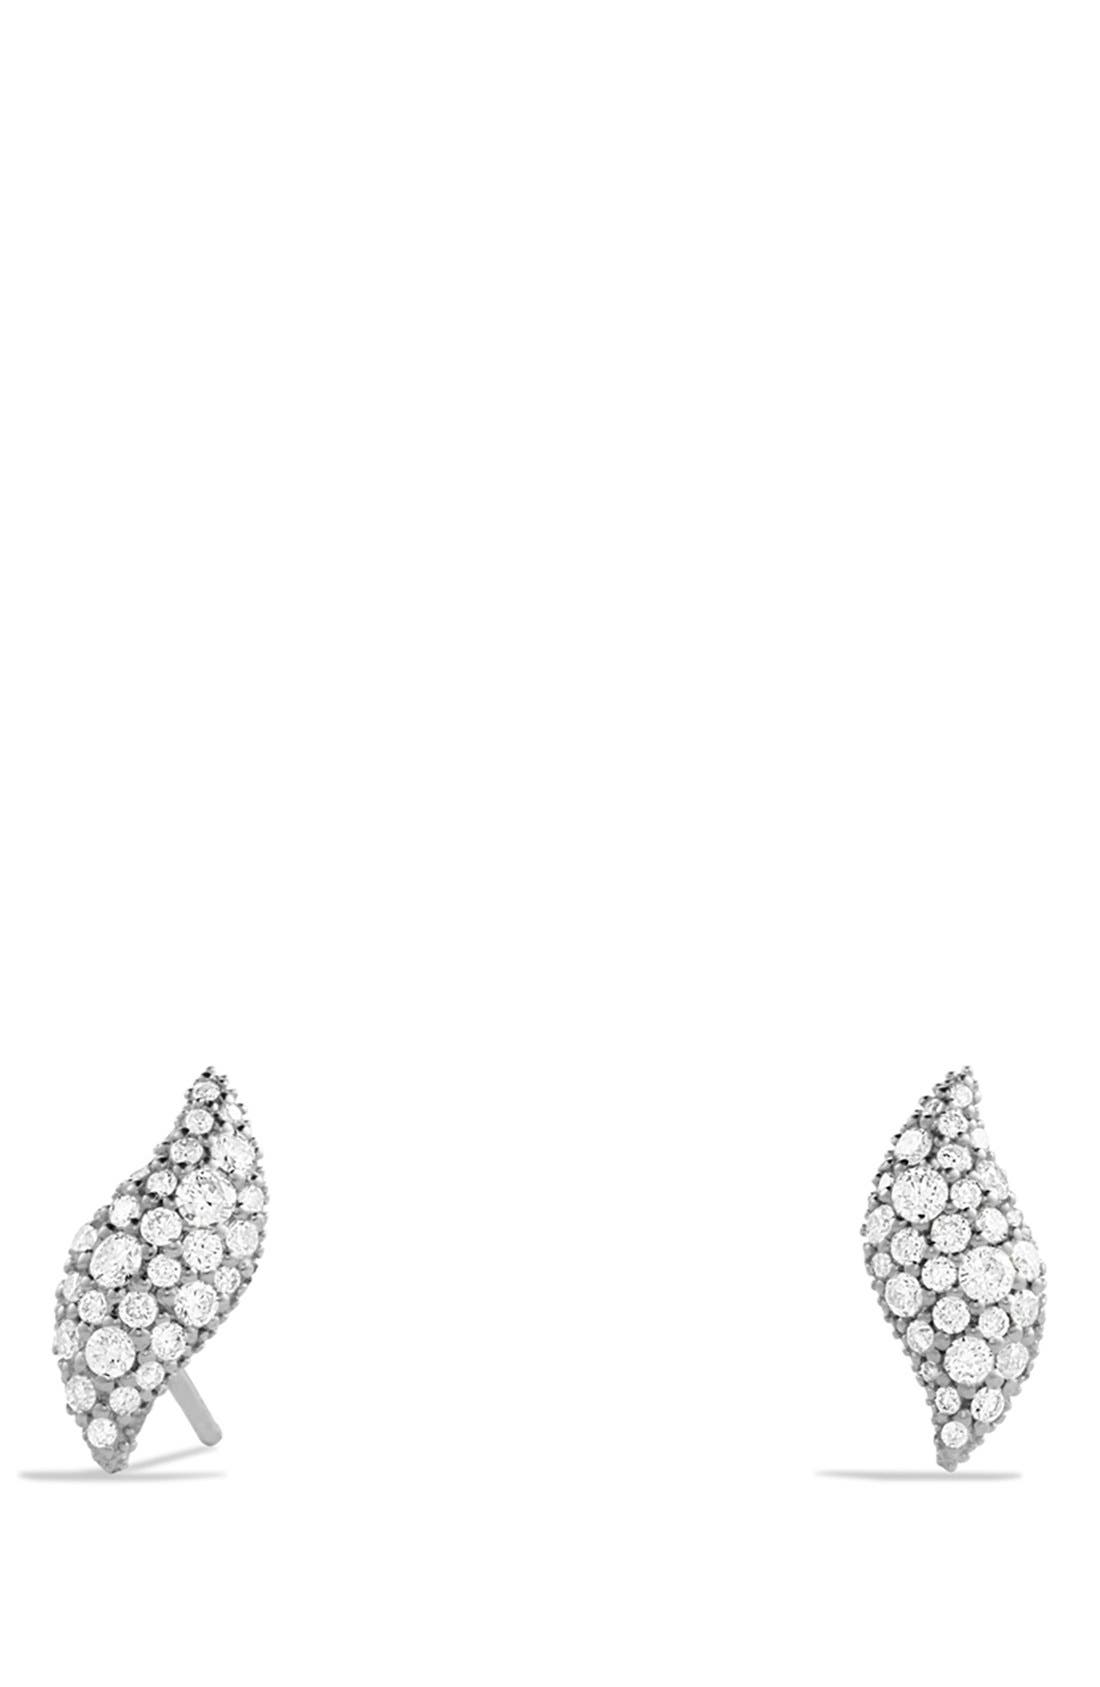 'Hampton Cable' Earrings with Diamonds,                             Main thumbnail 1, color,                             040